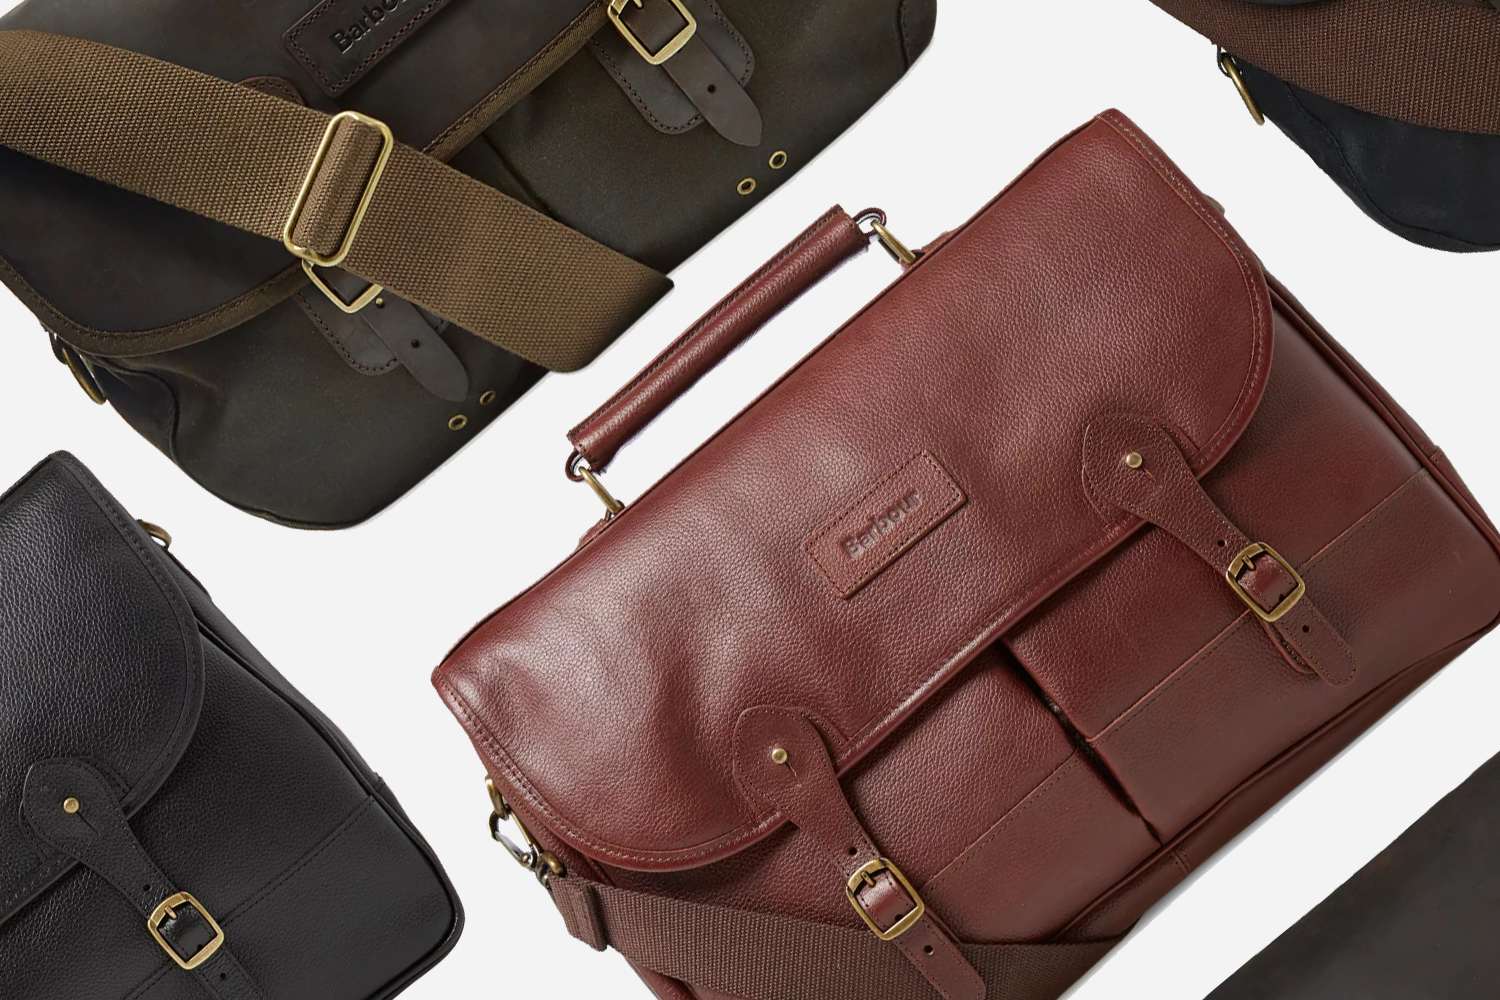 7c1e27e0152f FYI: Barbour Makes Work Bags and They're Up to $140 Off - InsideHook